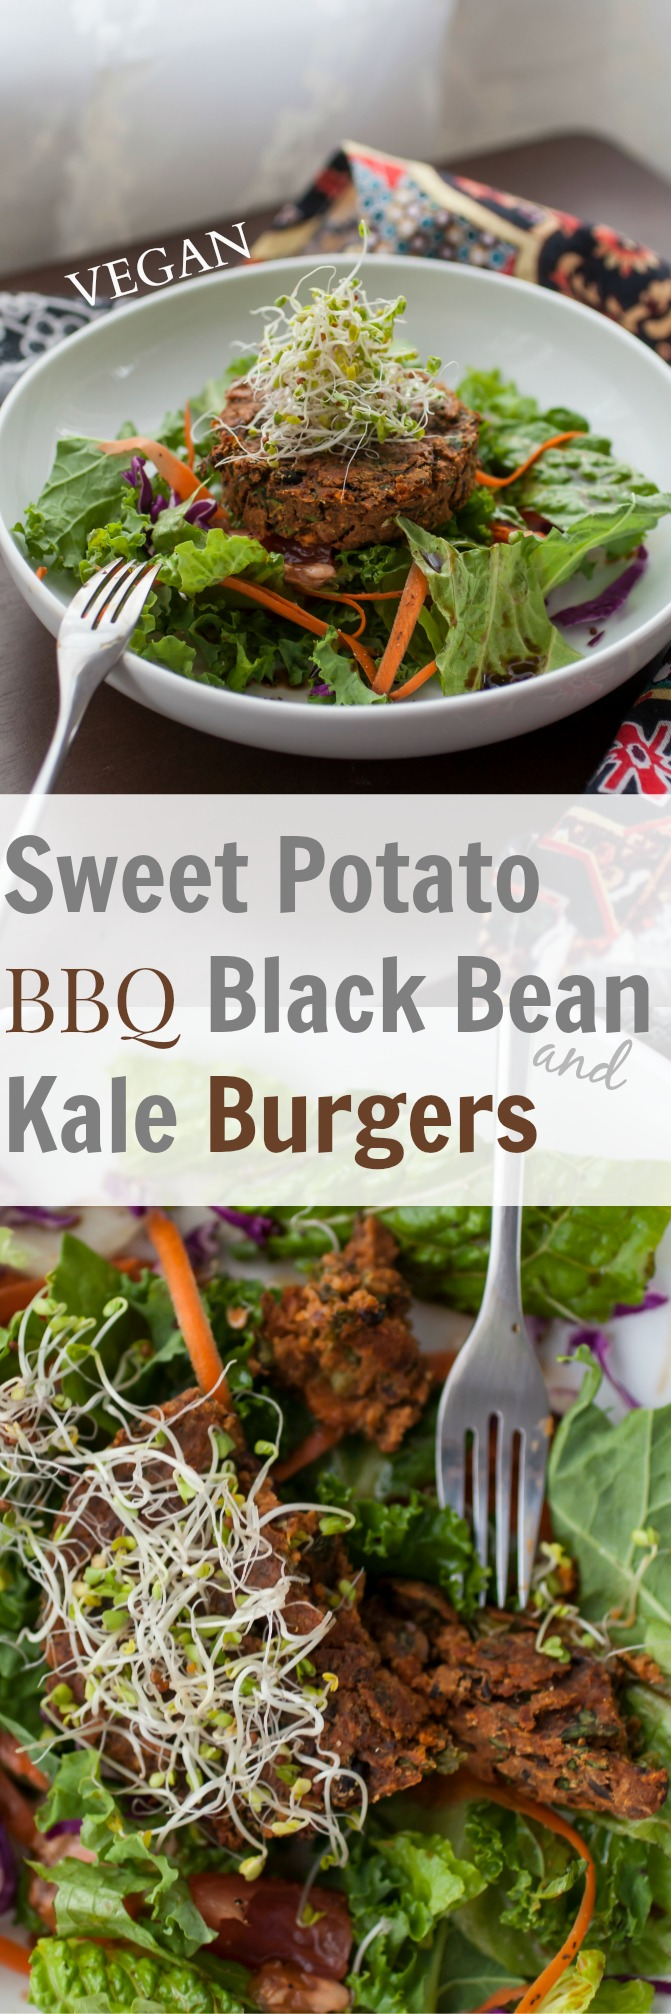 Produce On Parade - Sweet Potato, BBQ Black Bean & Kale Burgers - These roasted vegan burgers are a snap to whip together and bake up quick in the oven for very tasty and healthy burgers that you can freeze for quick eats later.